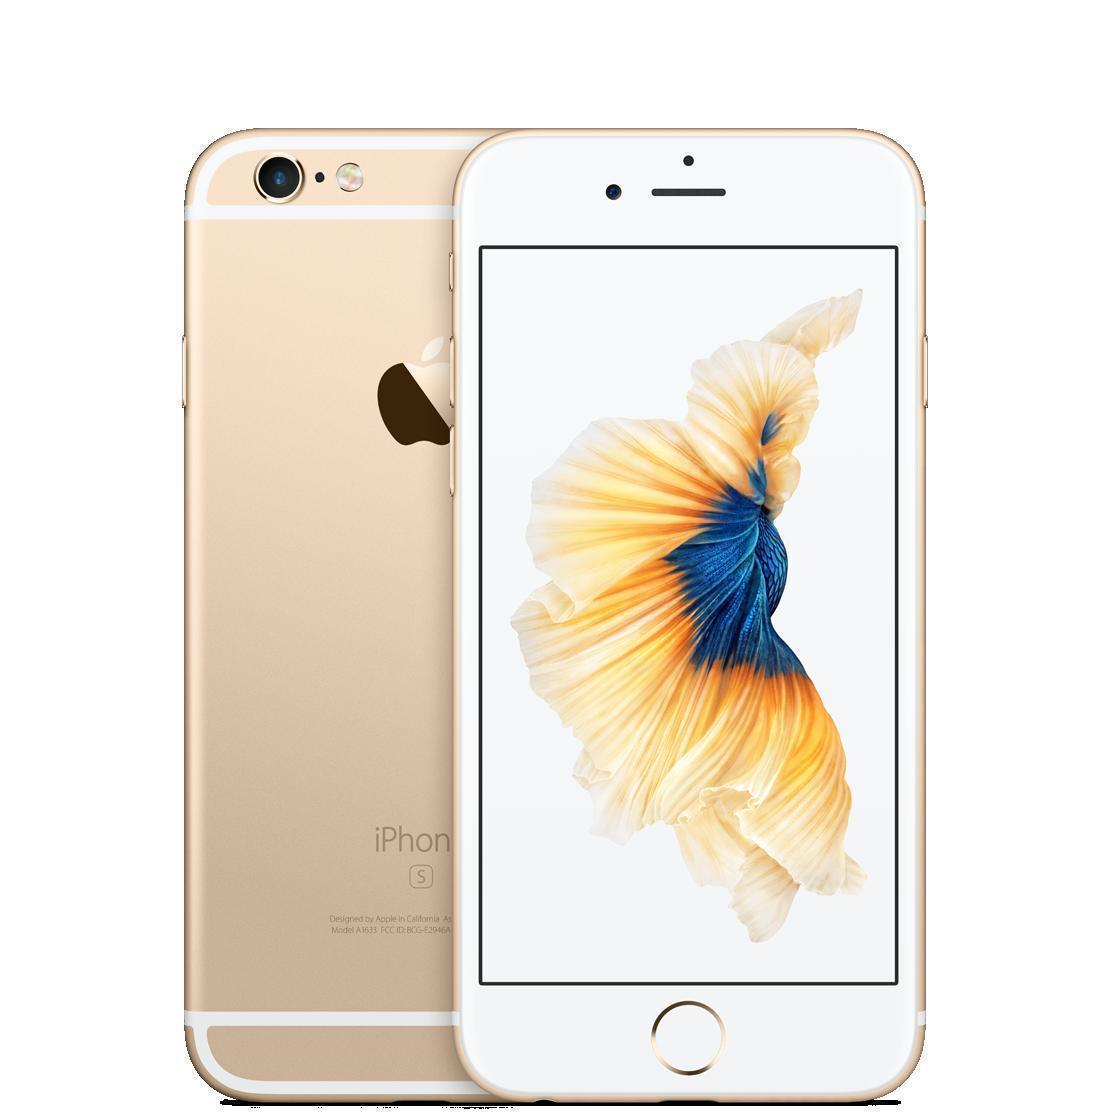 iPhone 6s 16GB - Gold - Ohne Vertrag